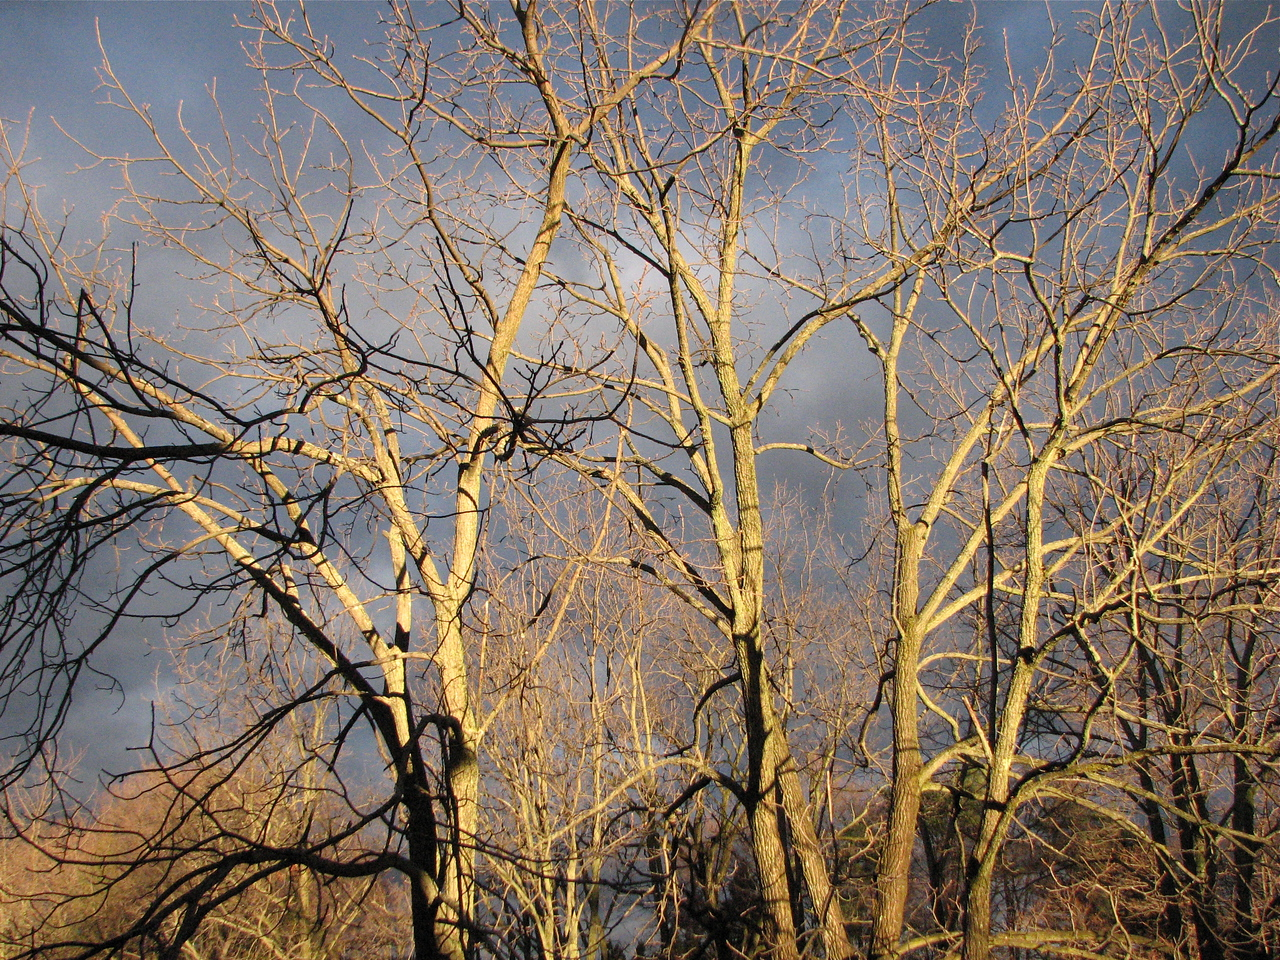 Walnuts lit by late day sun with stormy December sky in background